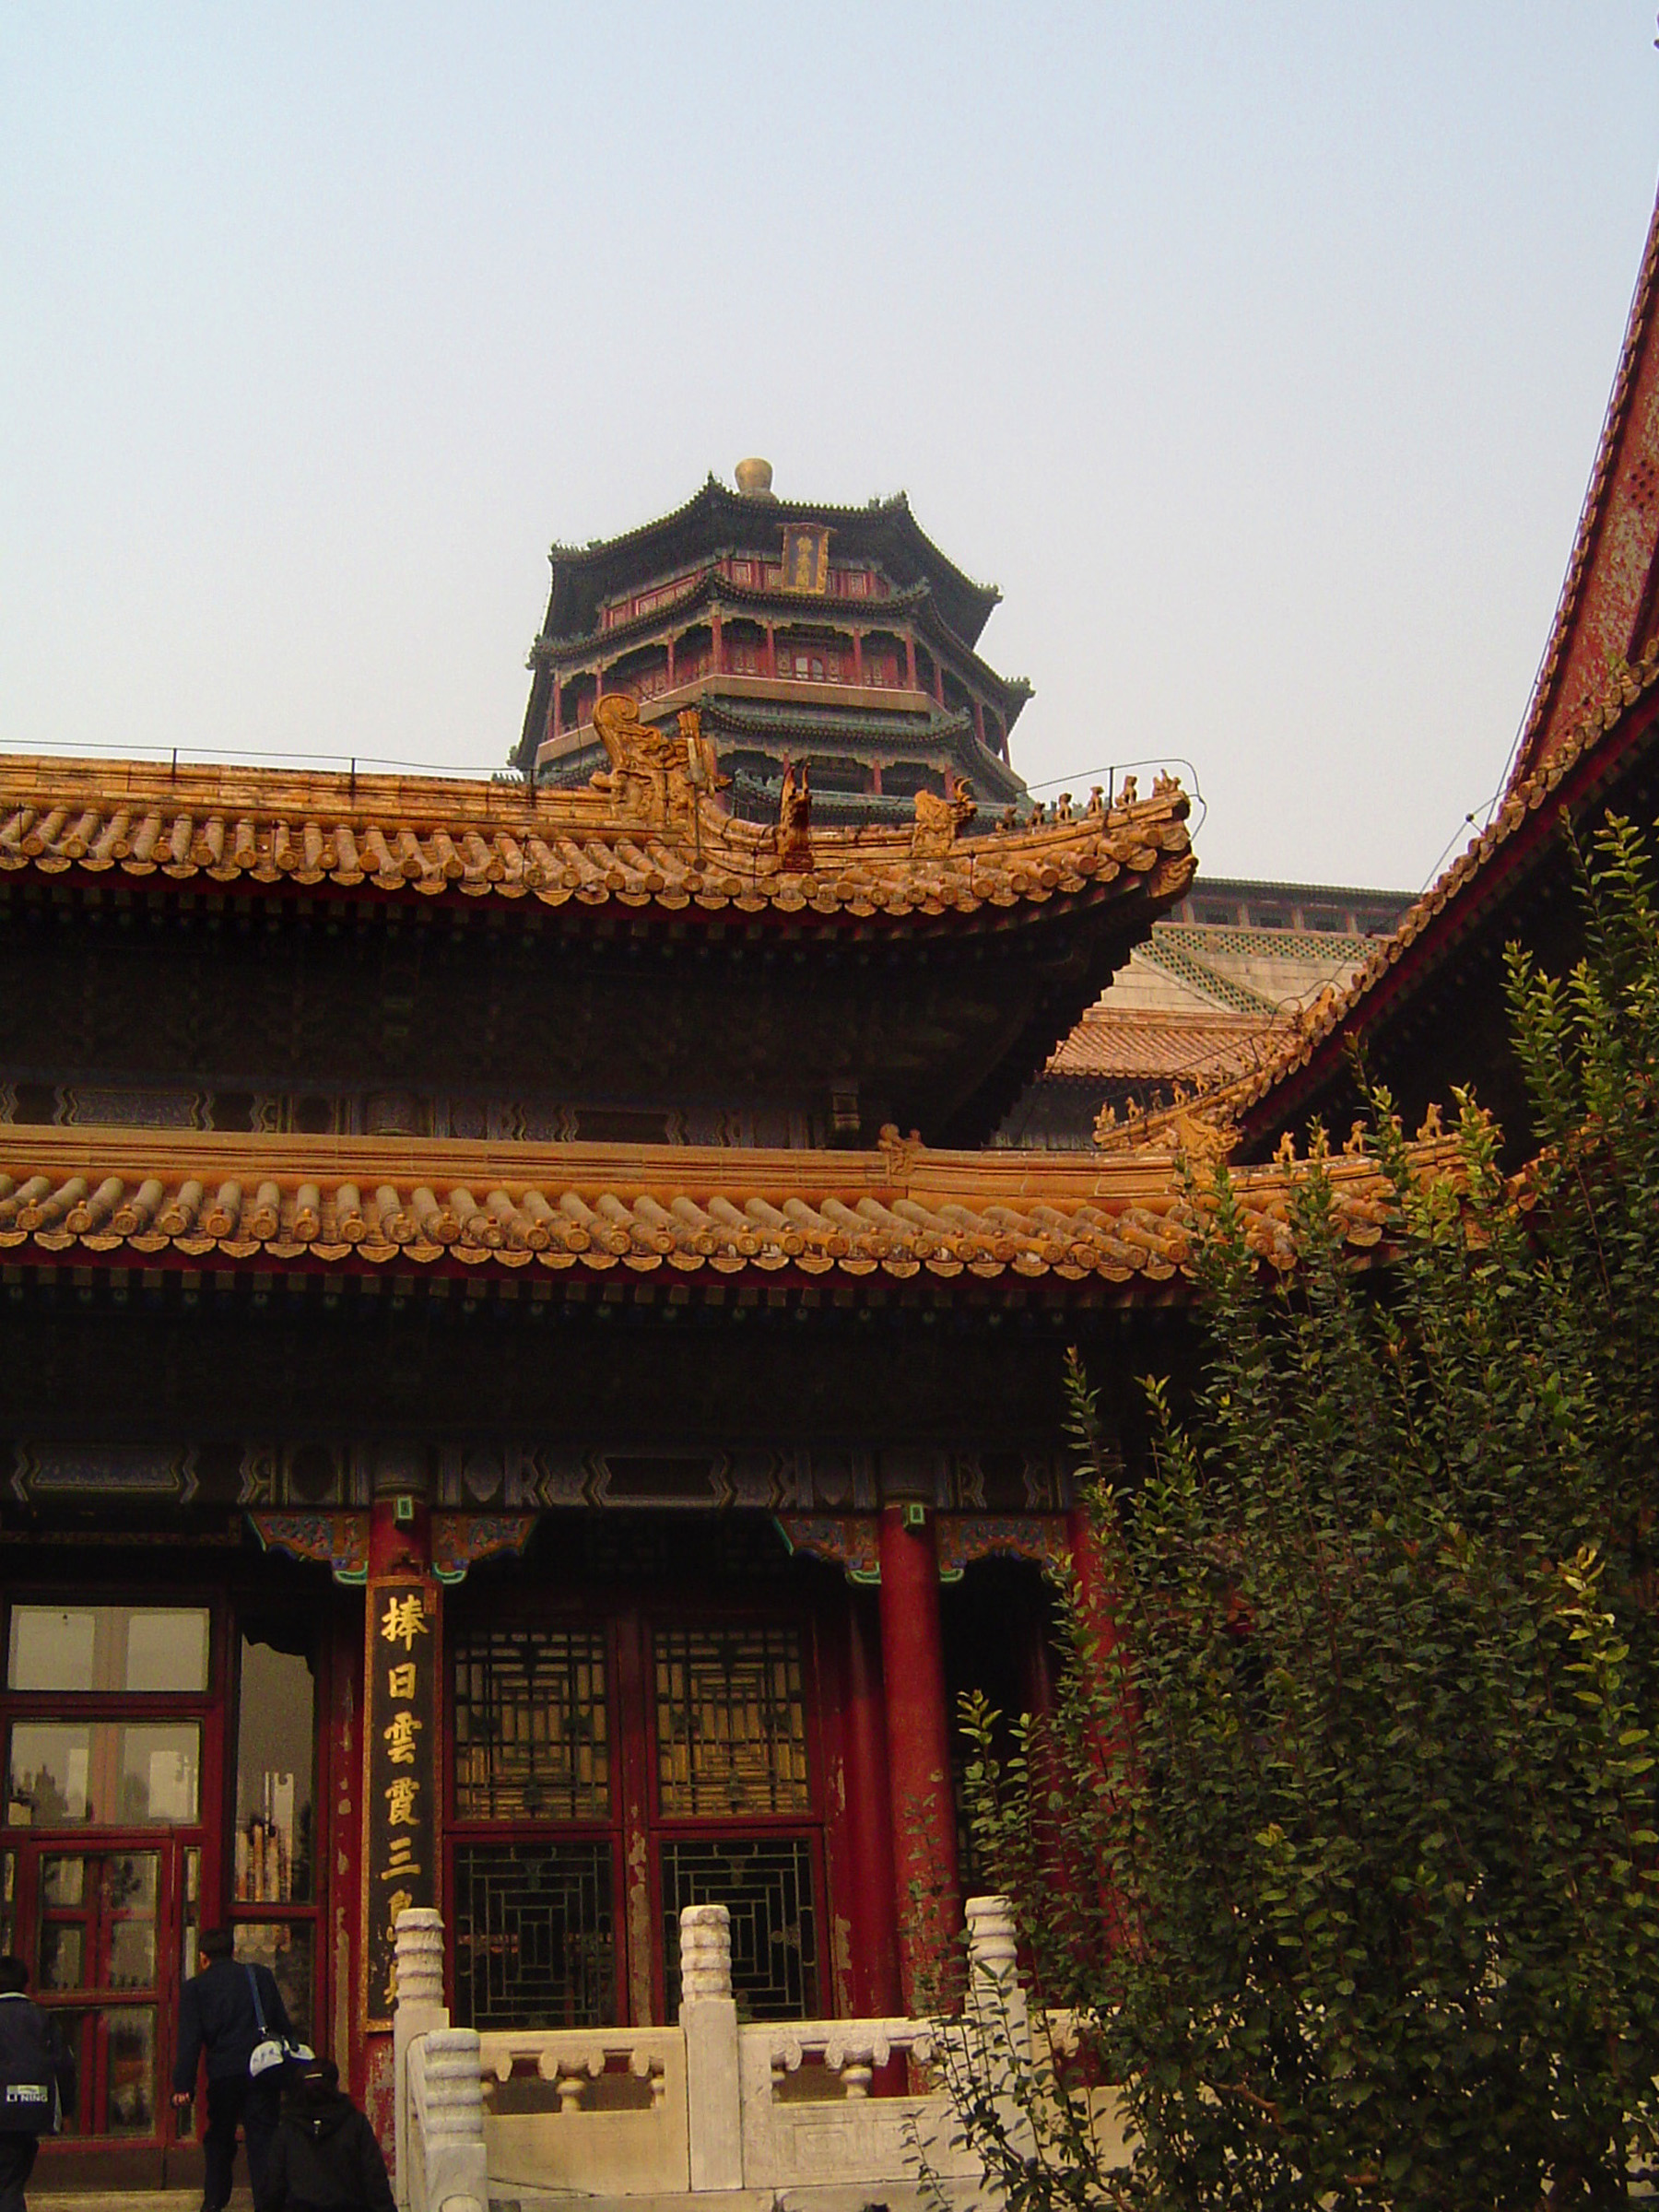 Famous Historic Architectural China Temple Building Captured in Lighter Blue Gray Sky Background.